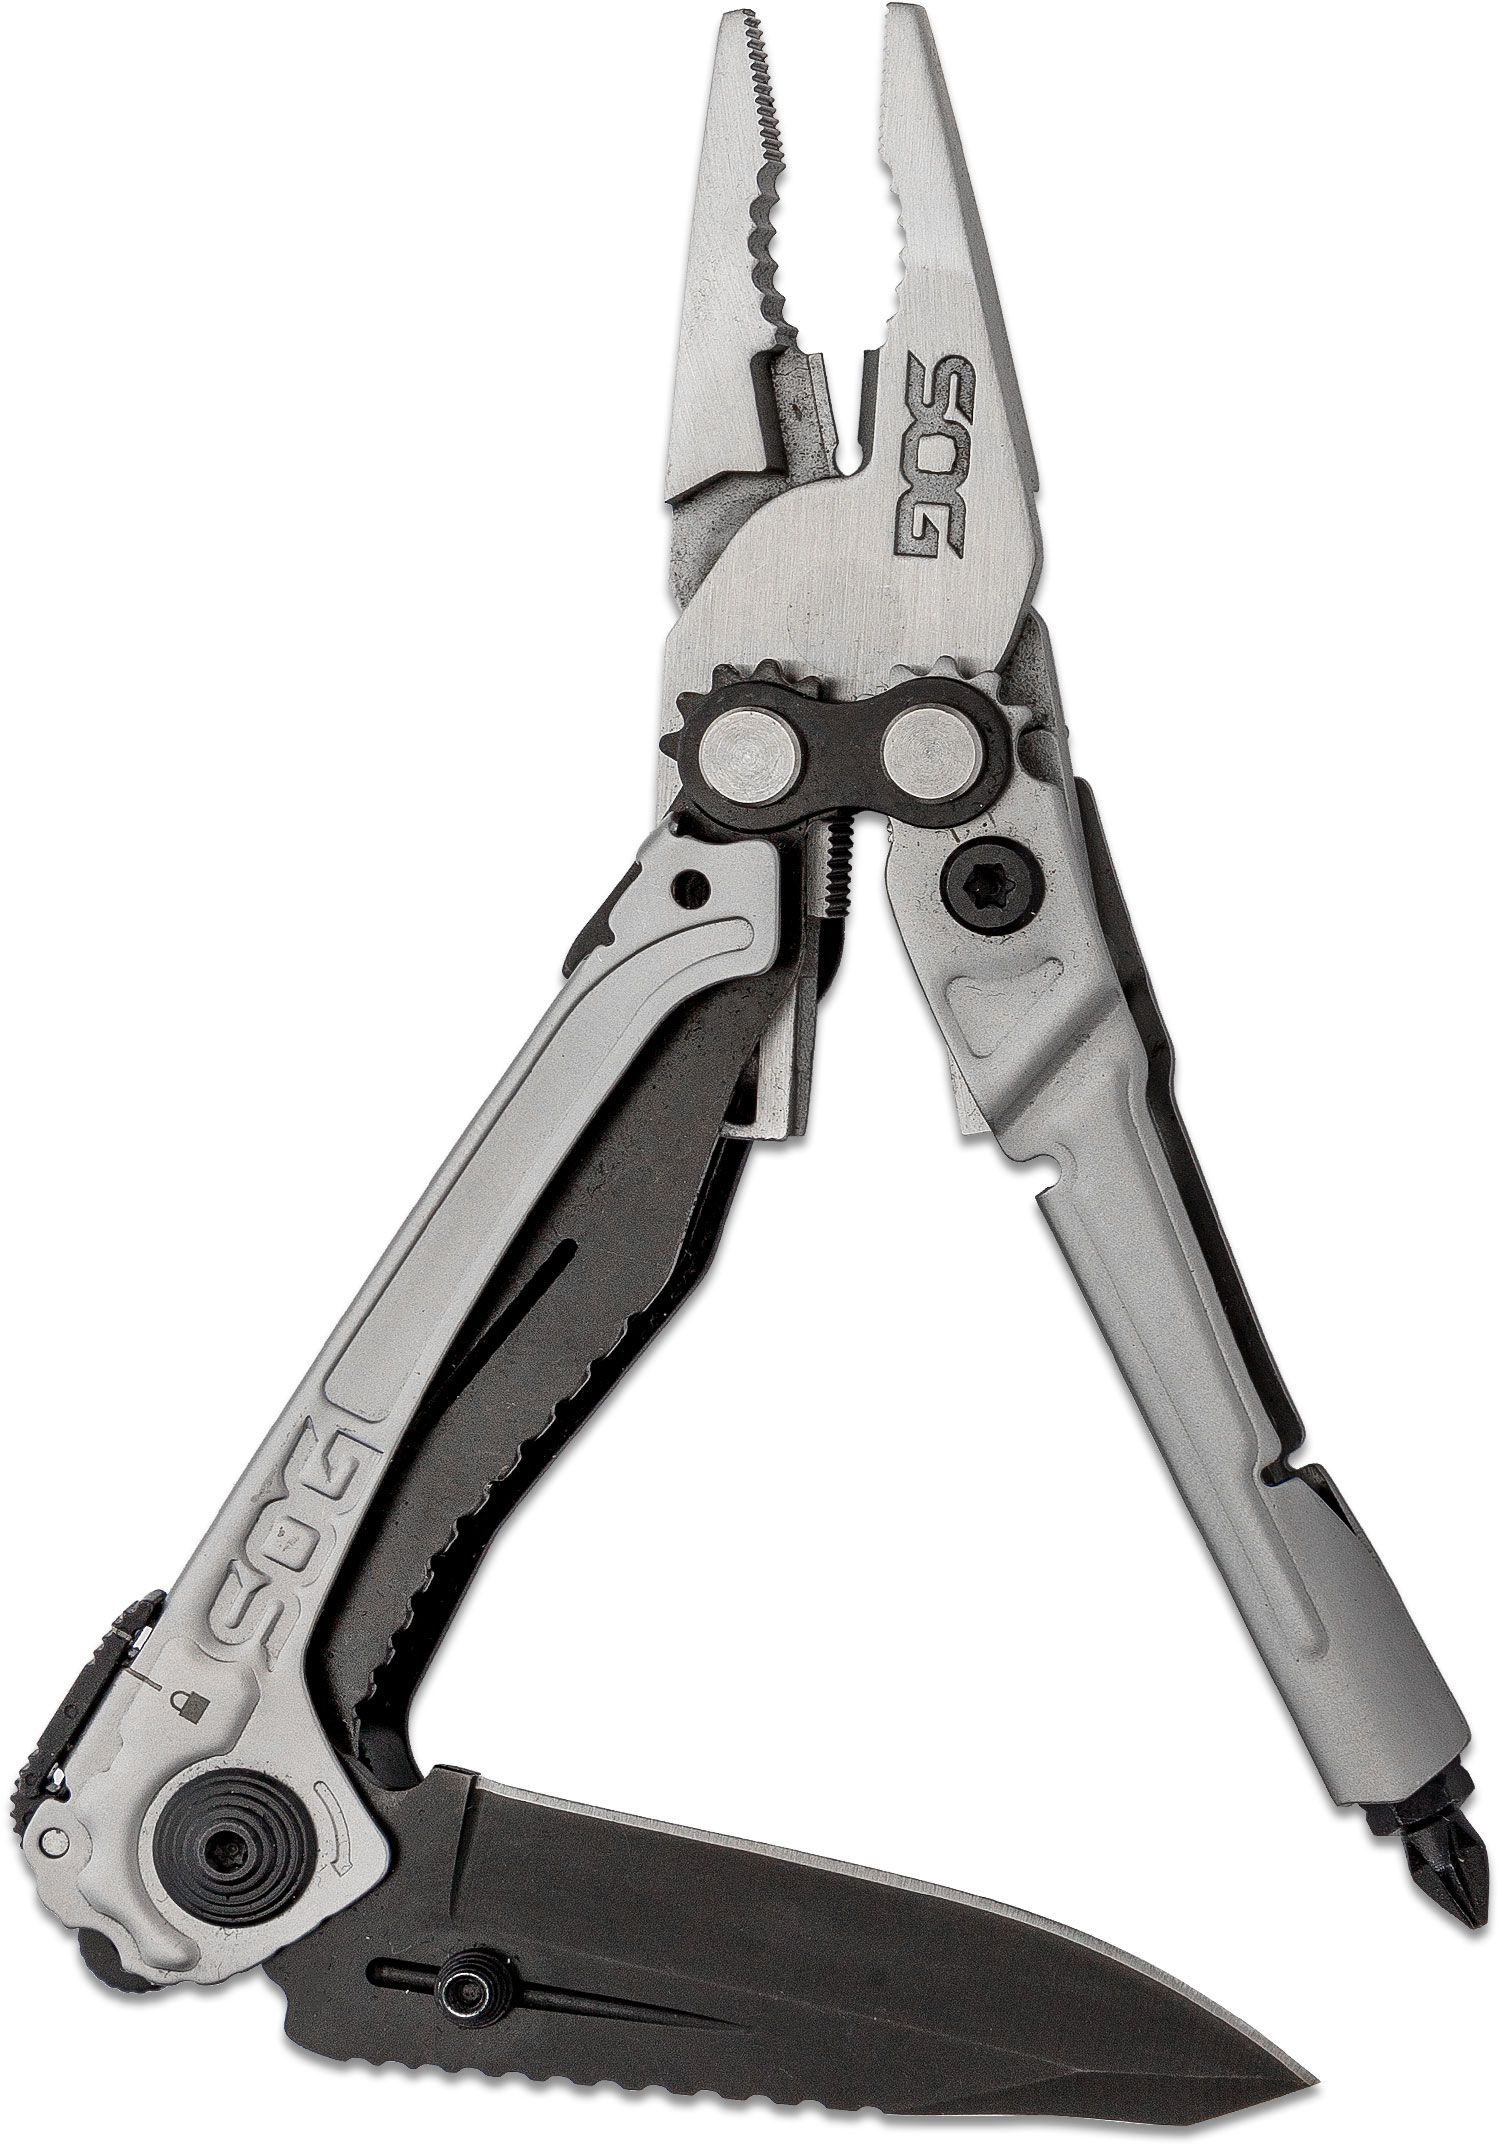 SOG RC1001 Reactor Multi-Tool, 2.5 inch Black Assisted Opening Plain Blade